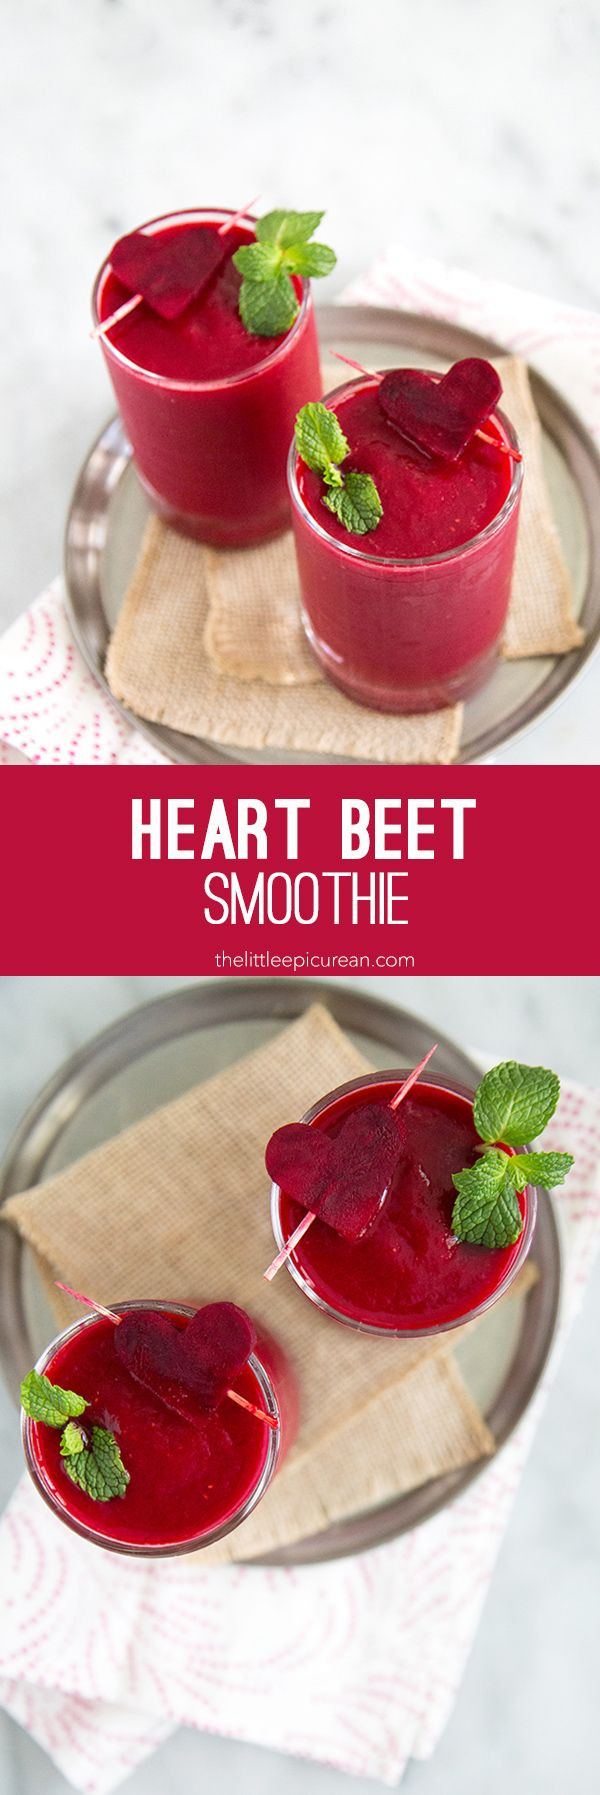 Heart Healthy Smoothie Recipes Heart Beet Smoothie Recipe Drinks